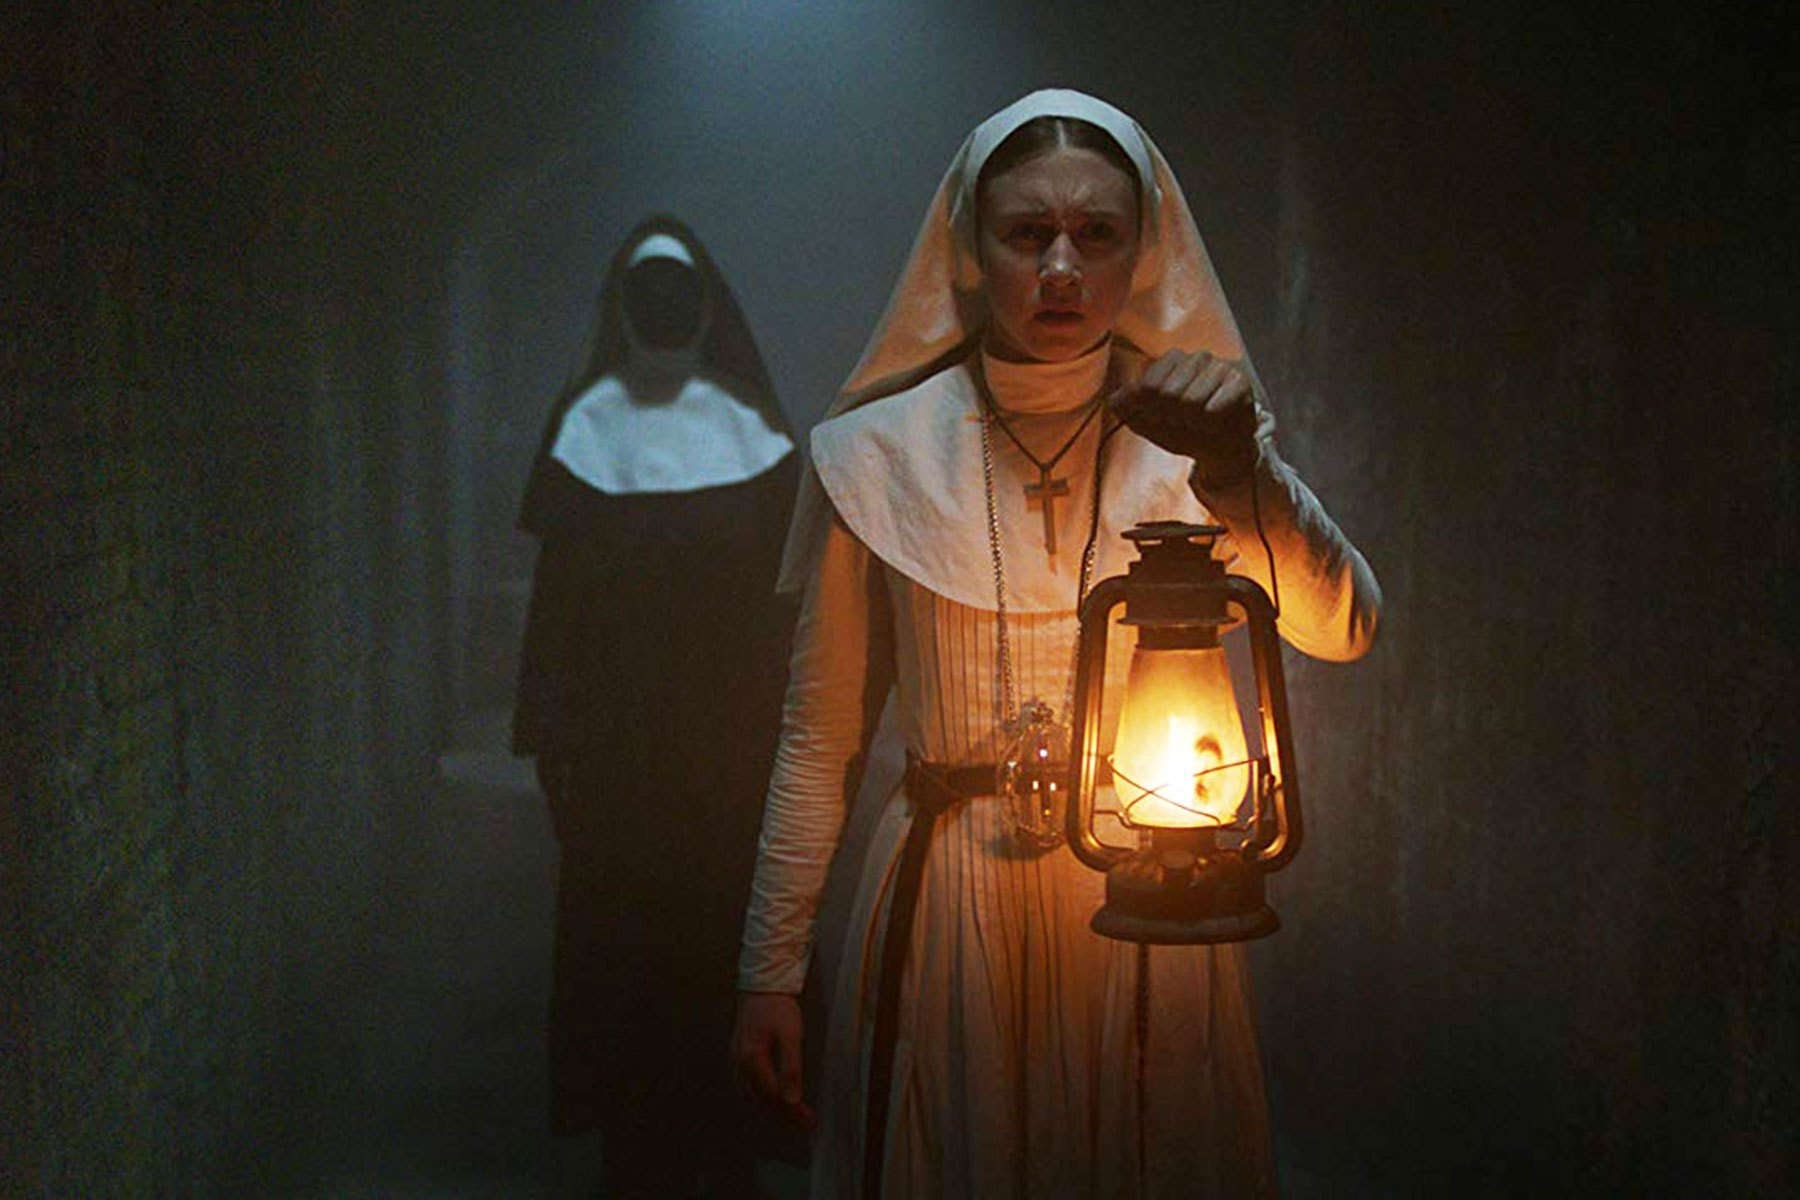 The 15 Best Horror Movies on Amazon Prime in Canada